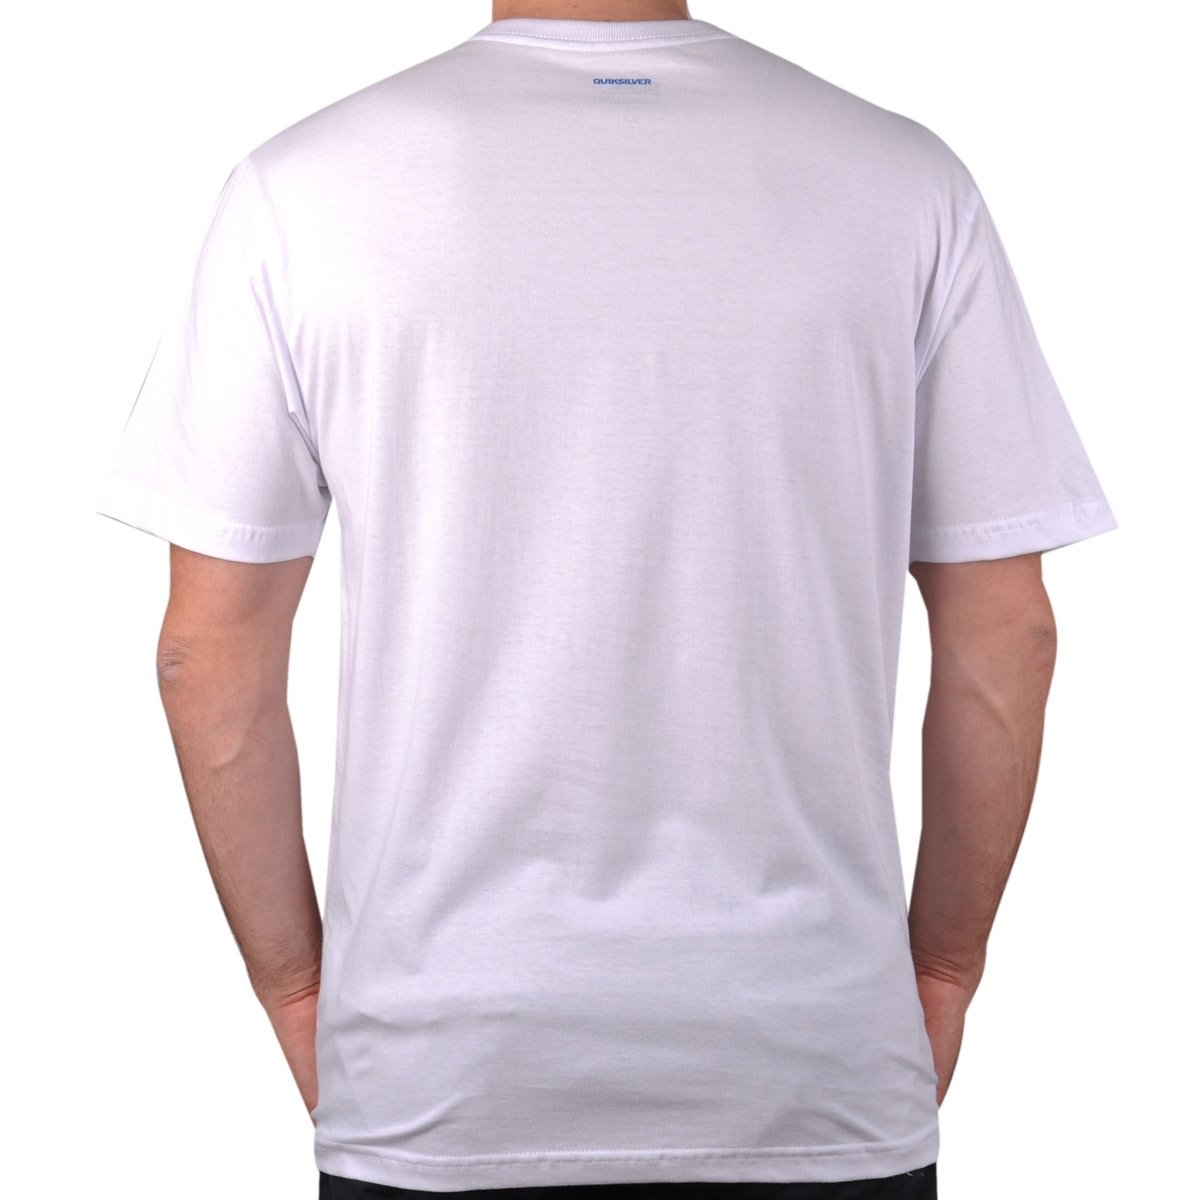 Quiksilver Point Camiseta Nile Quiksilver Branco Nile Branco Camiseta Point Camiseta t4dqxSBS